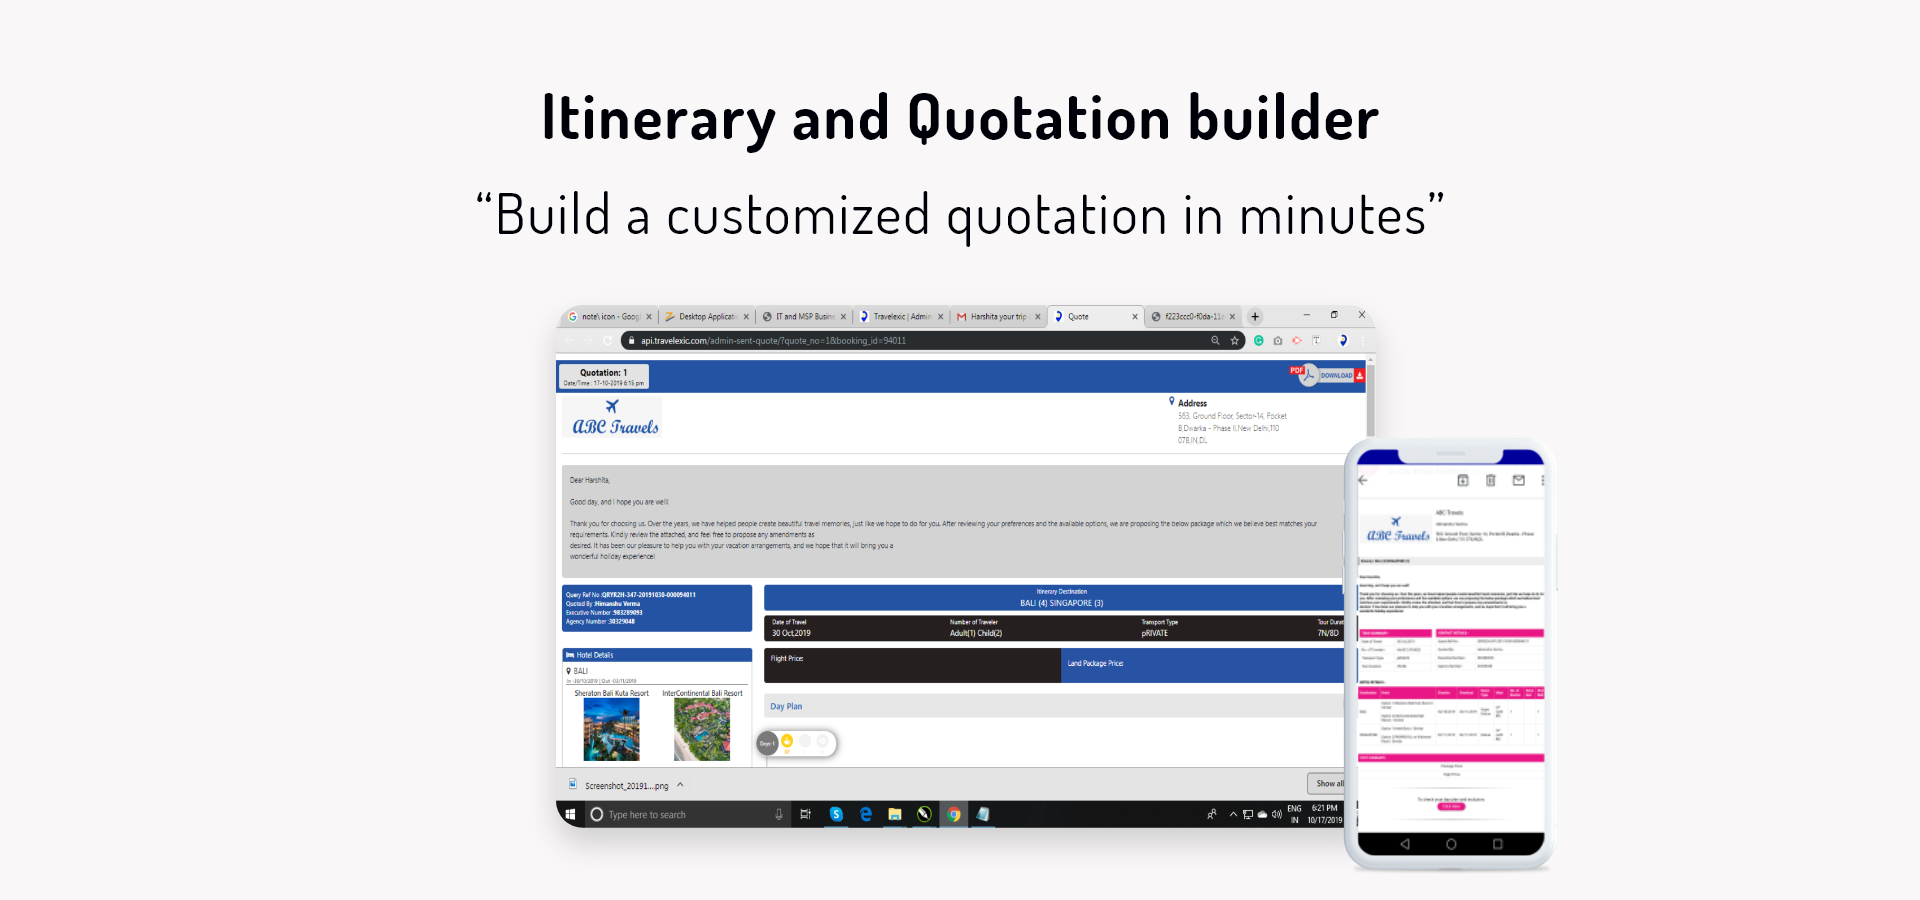 Itinerary and Quotation Builder